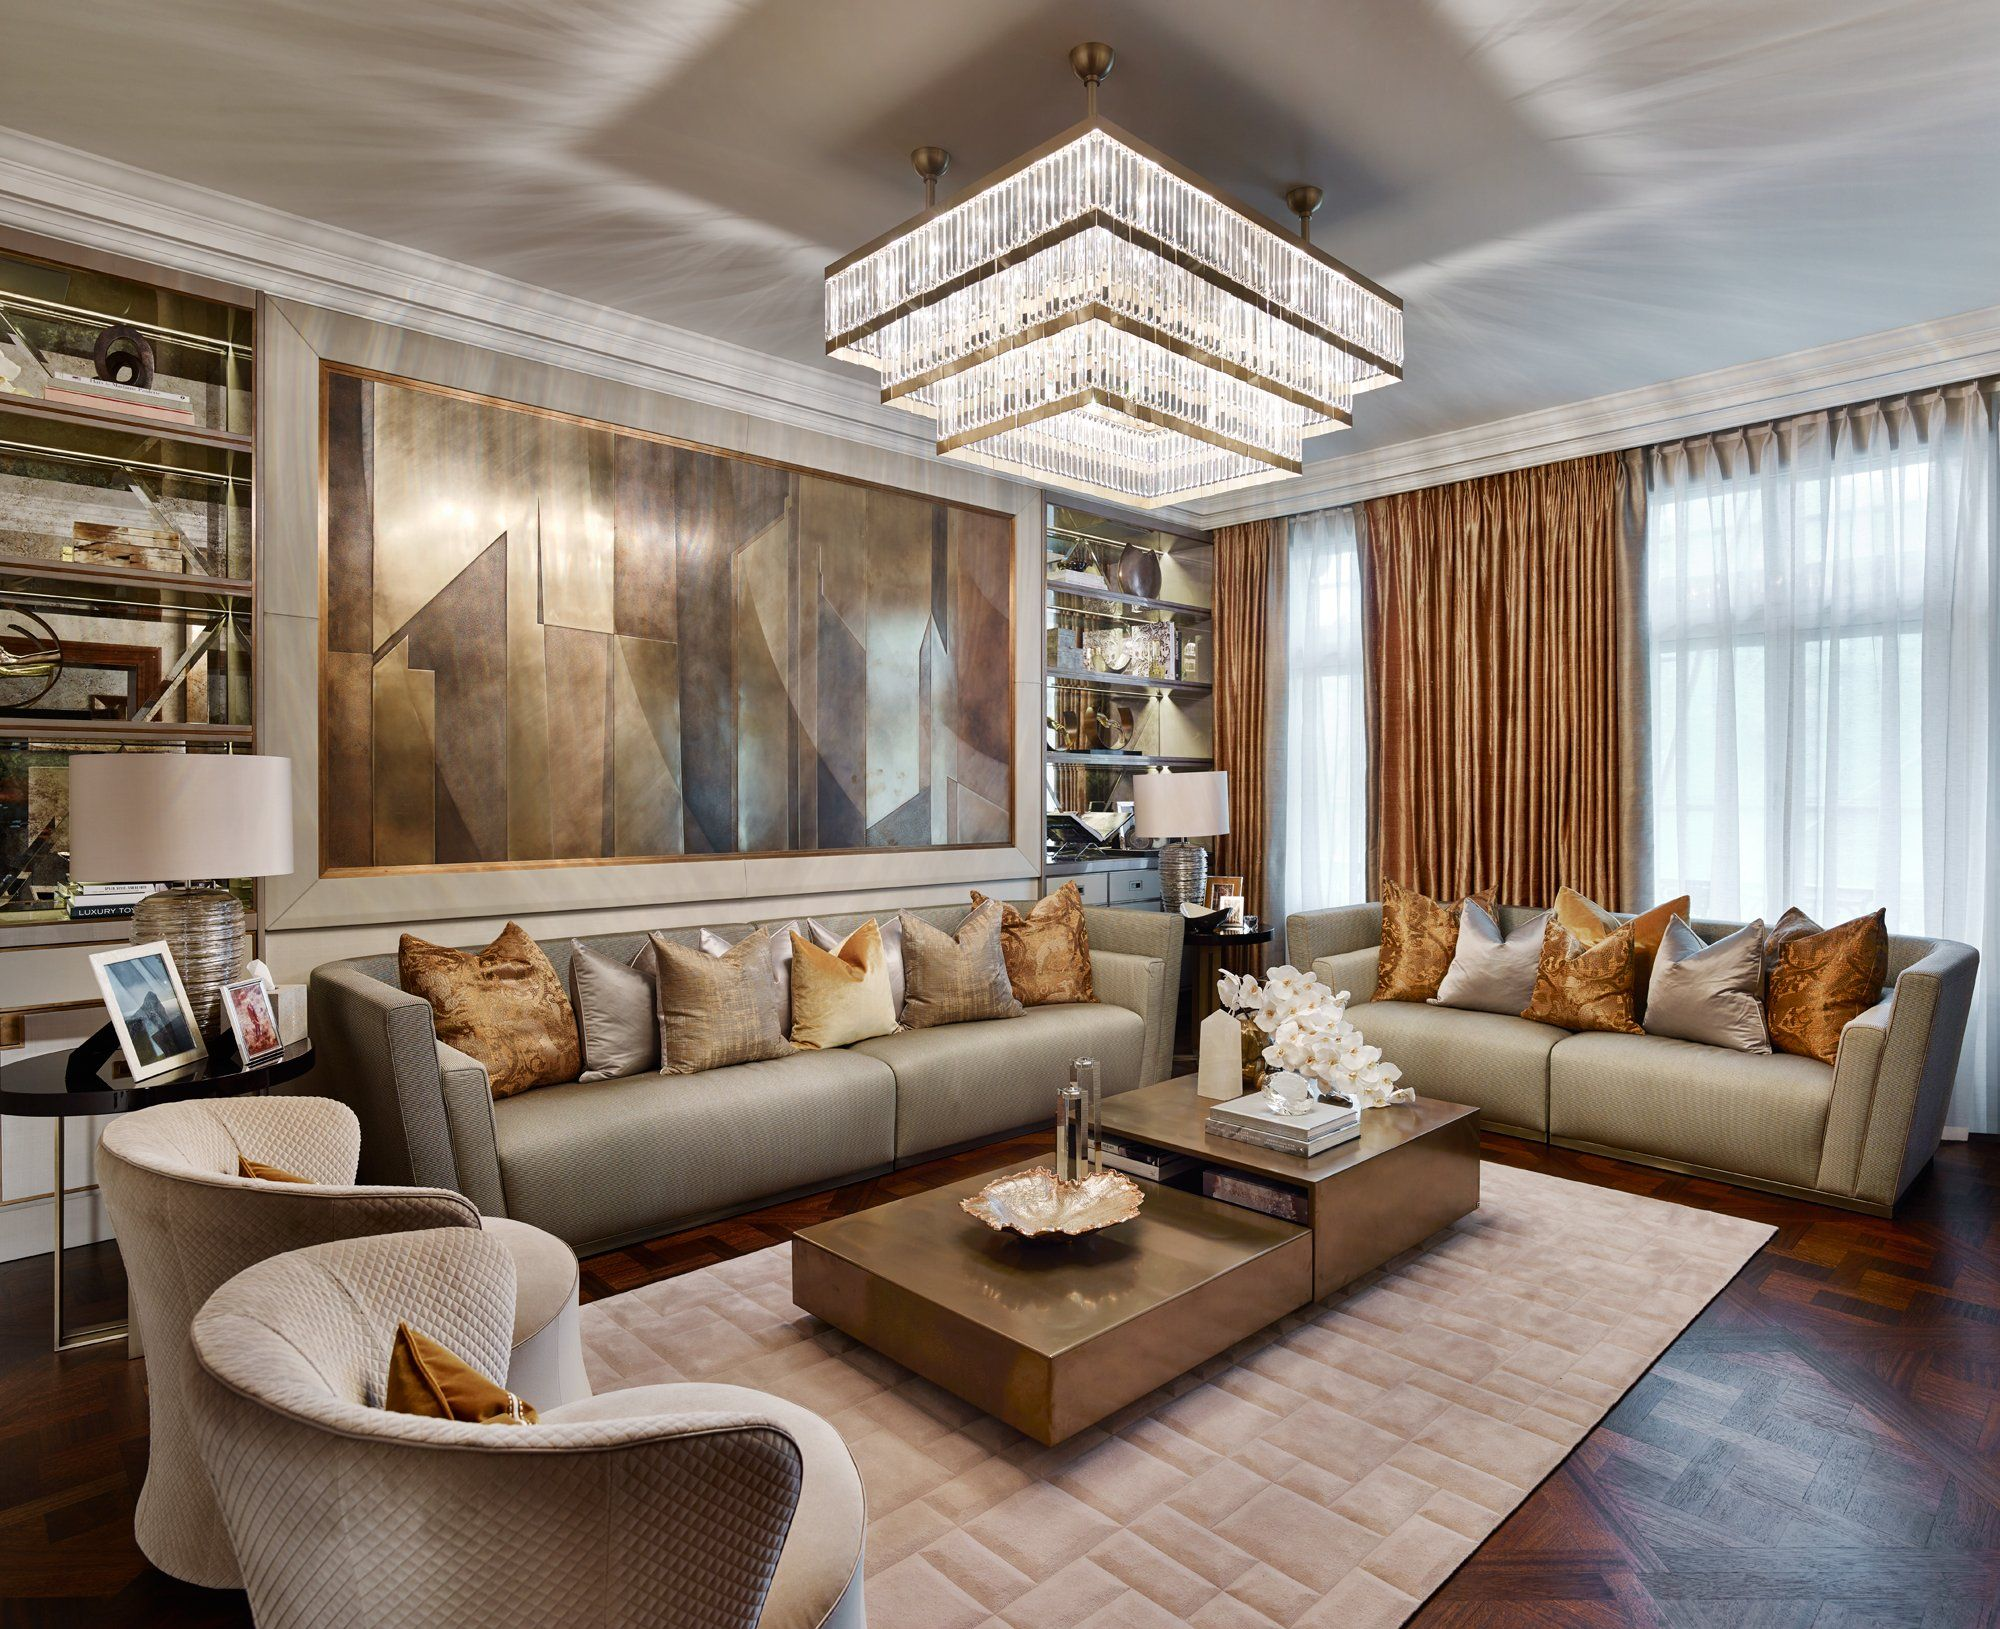 7 luxurious home decor ideas by elicyon that you will want - Interior design inspiration living room ...